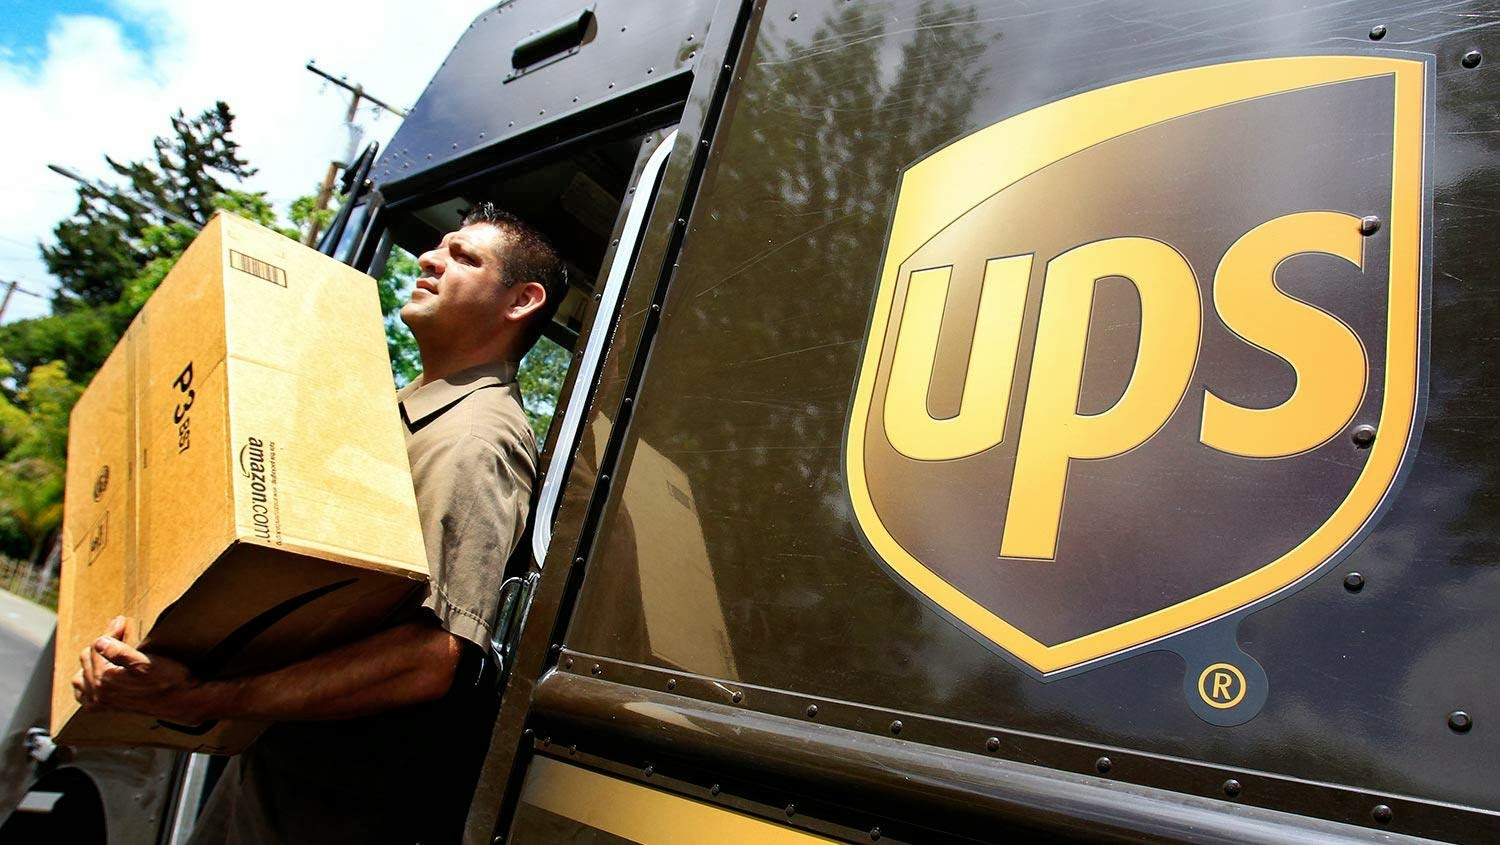 ups and fedex developing their own delivery drones to compete with amazon primeair